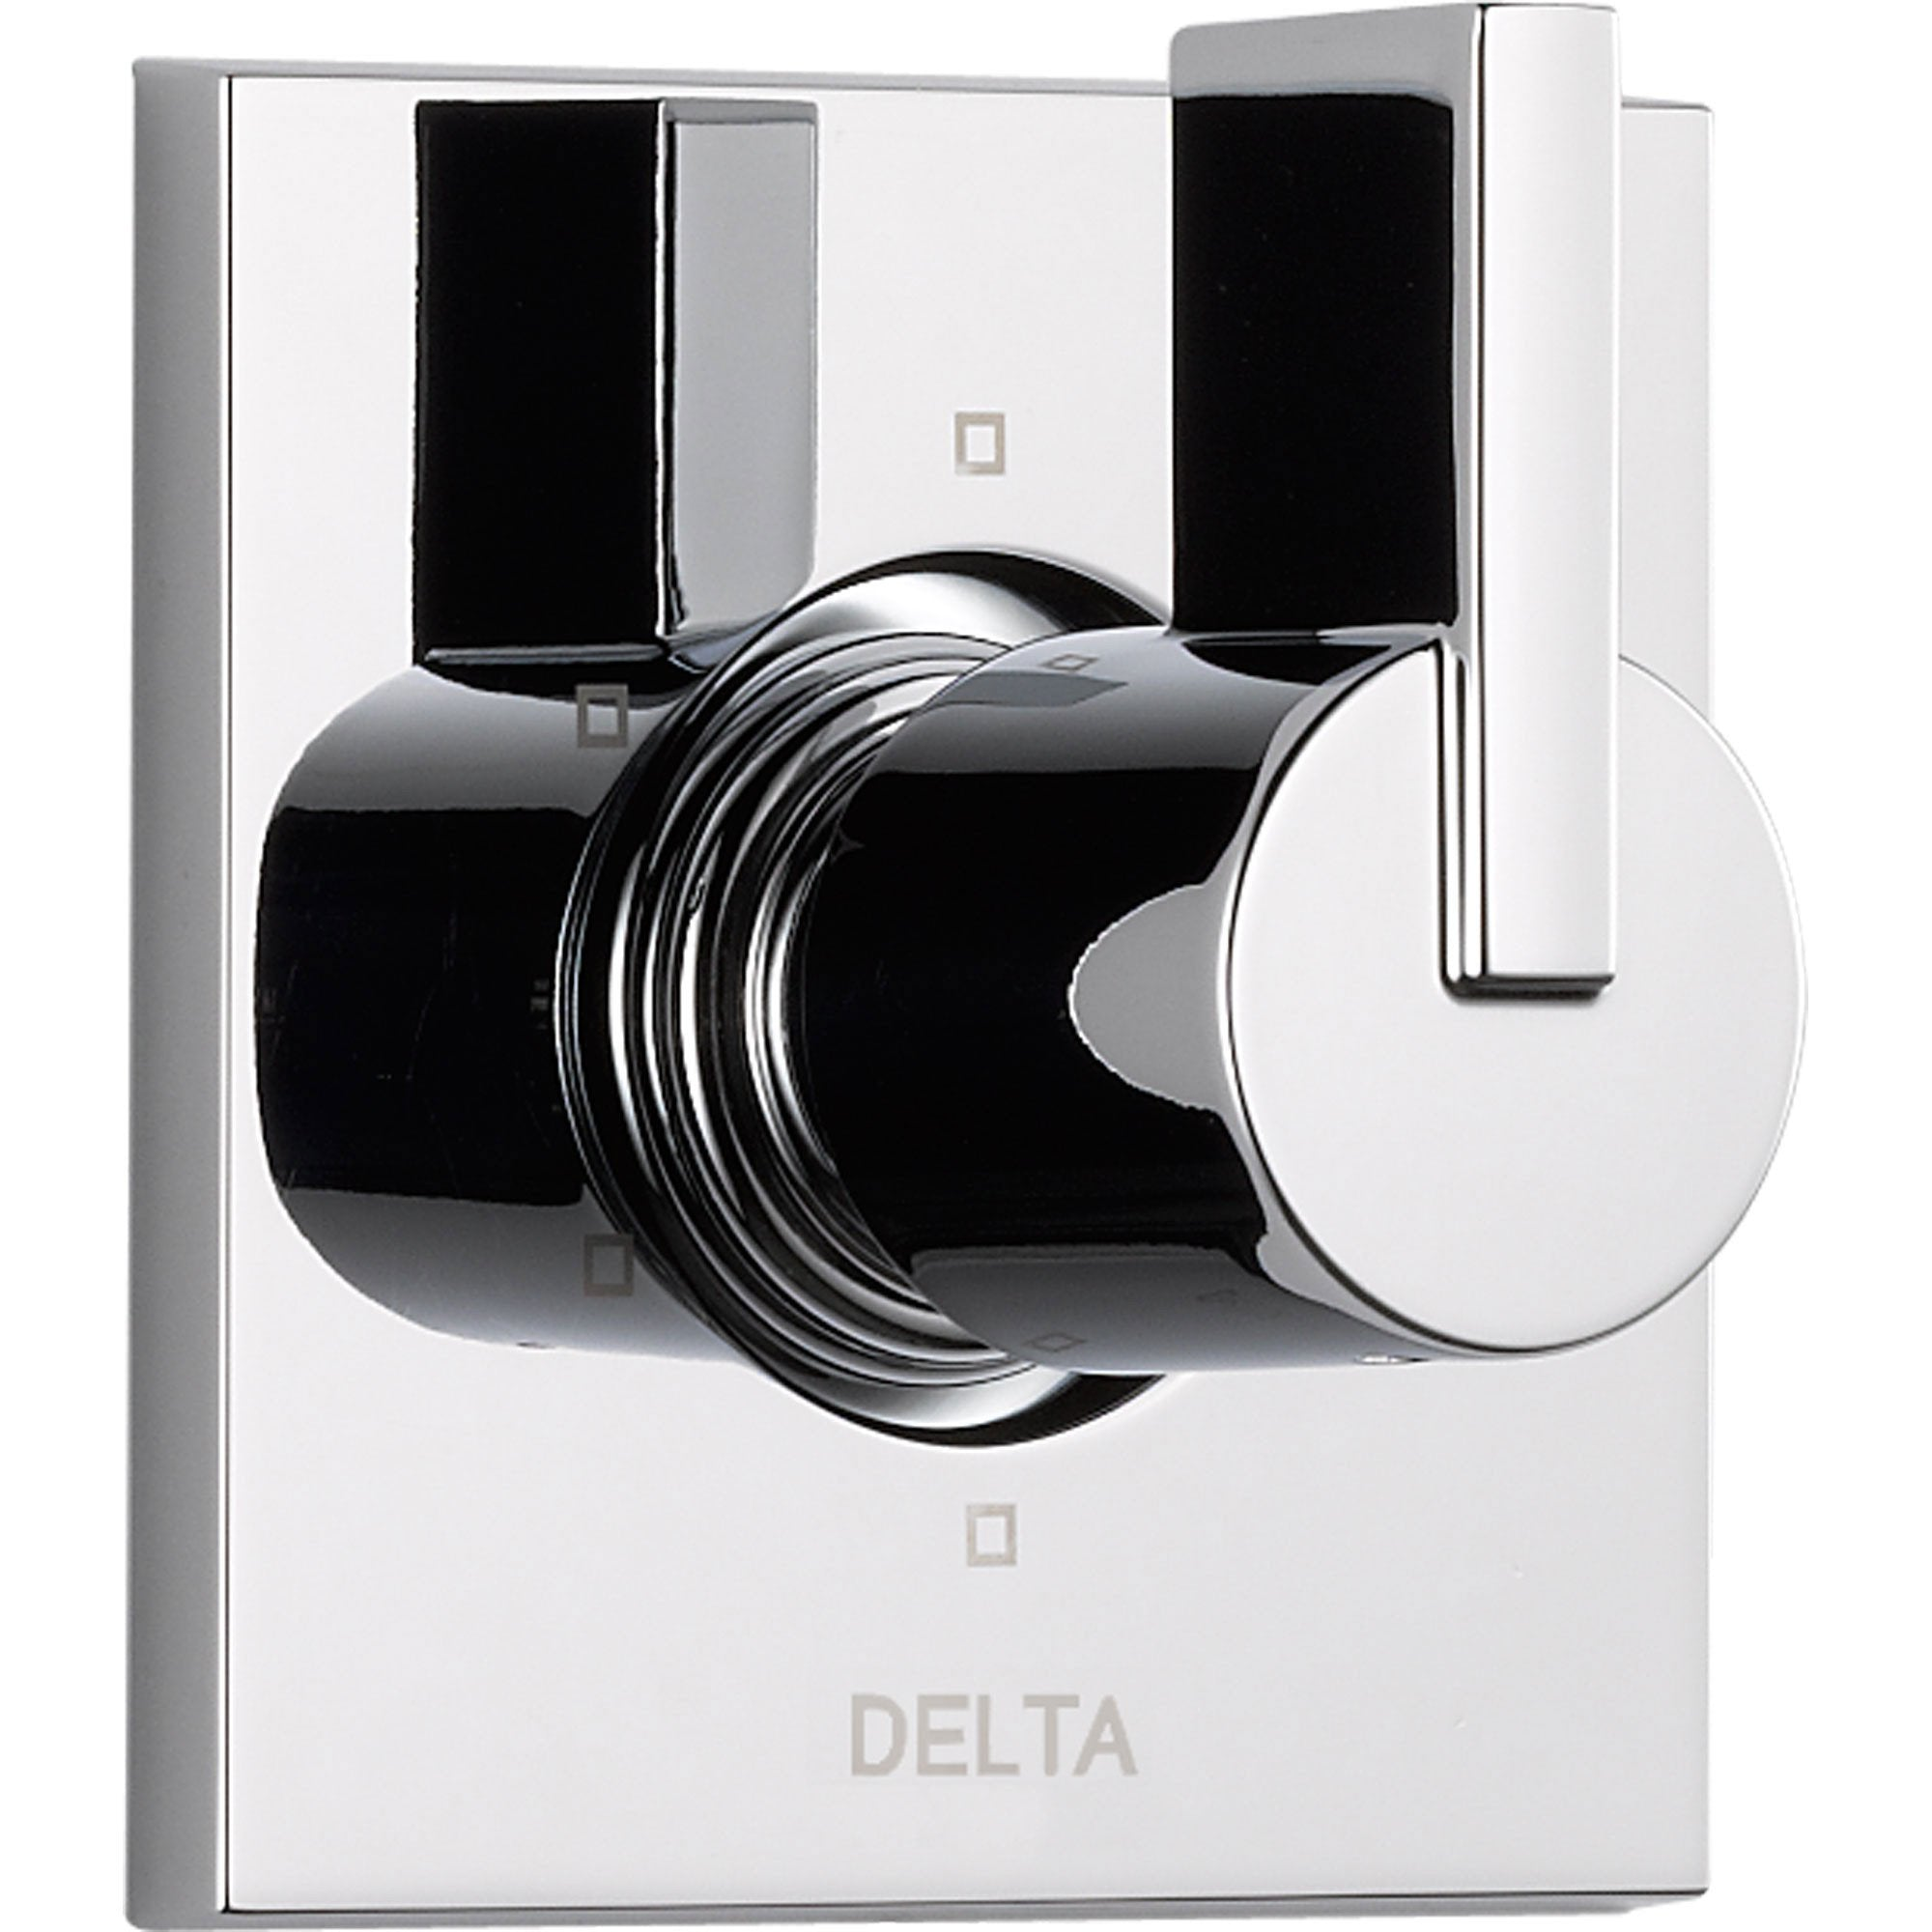 Delta Vero 6-Setting Chrome Single Handle Shower Diverter Includes Valve D151V